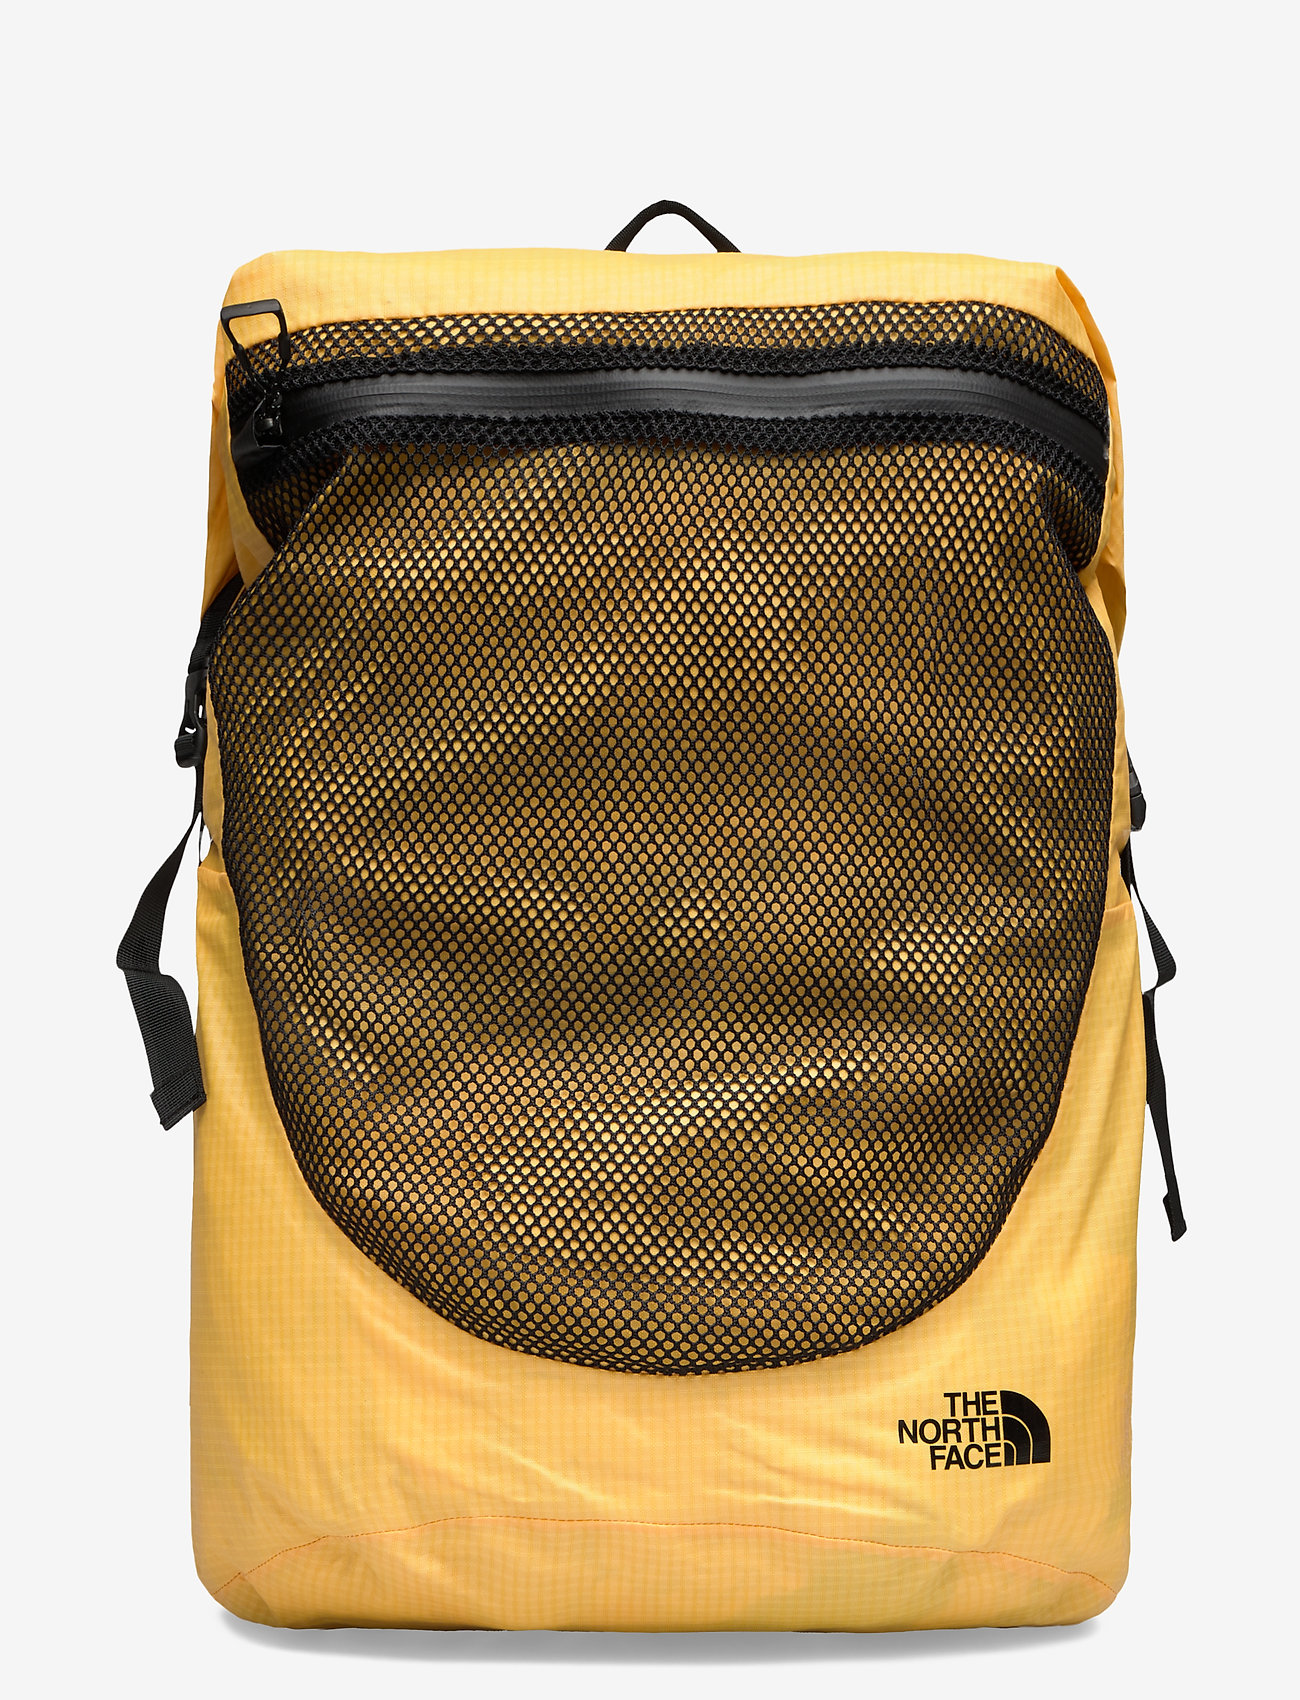 The North Face - WATERPROOF ROLLTOP - gender neutral - tnf yellow - 0